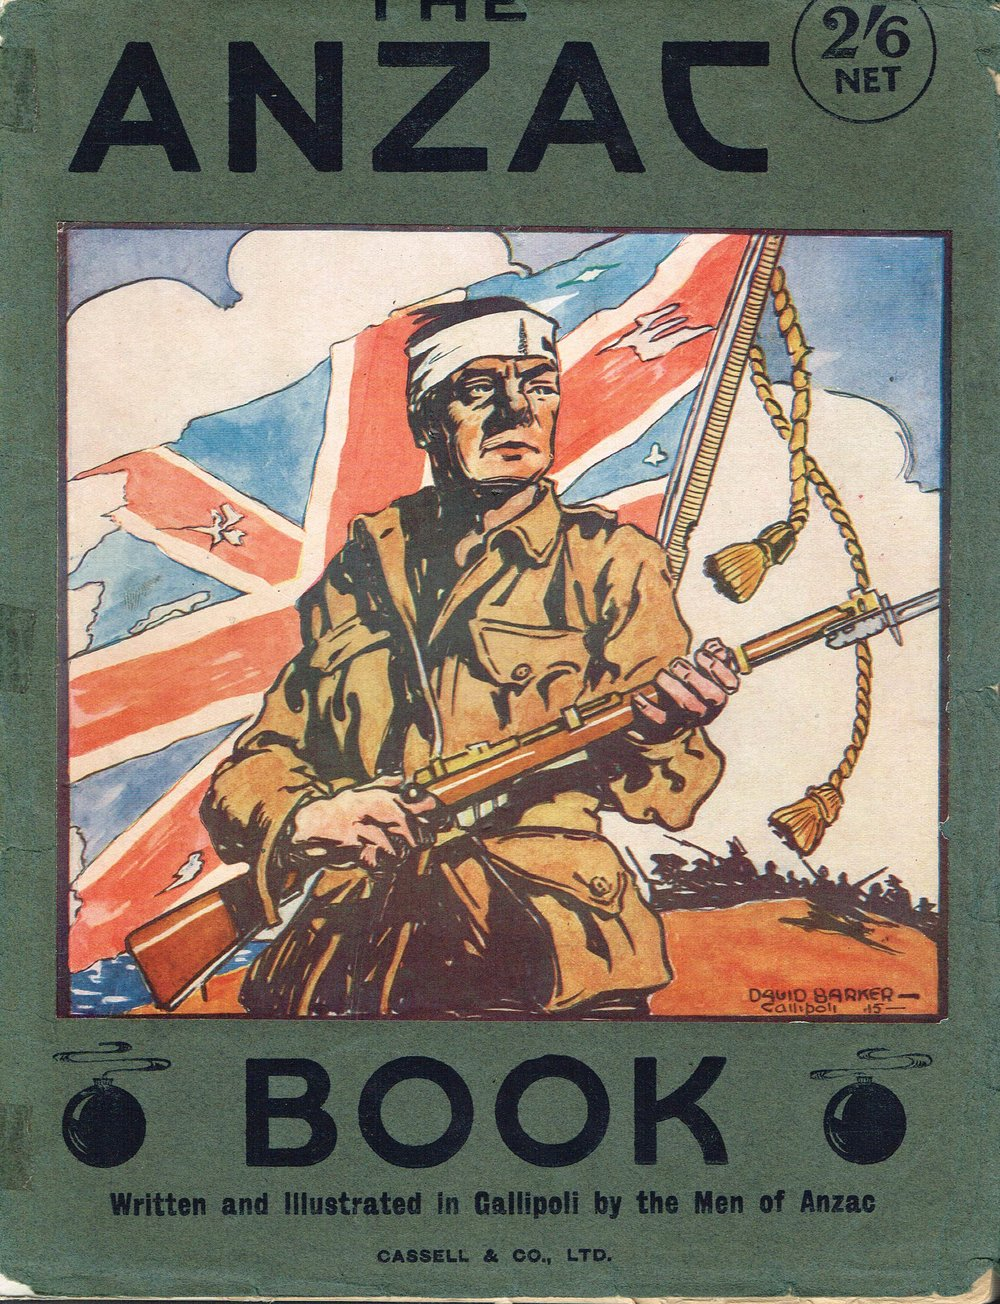 The Anzac Book Written and Illustrated in Gallipoli by The Men of Anzac